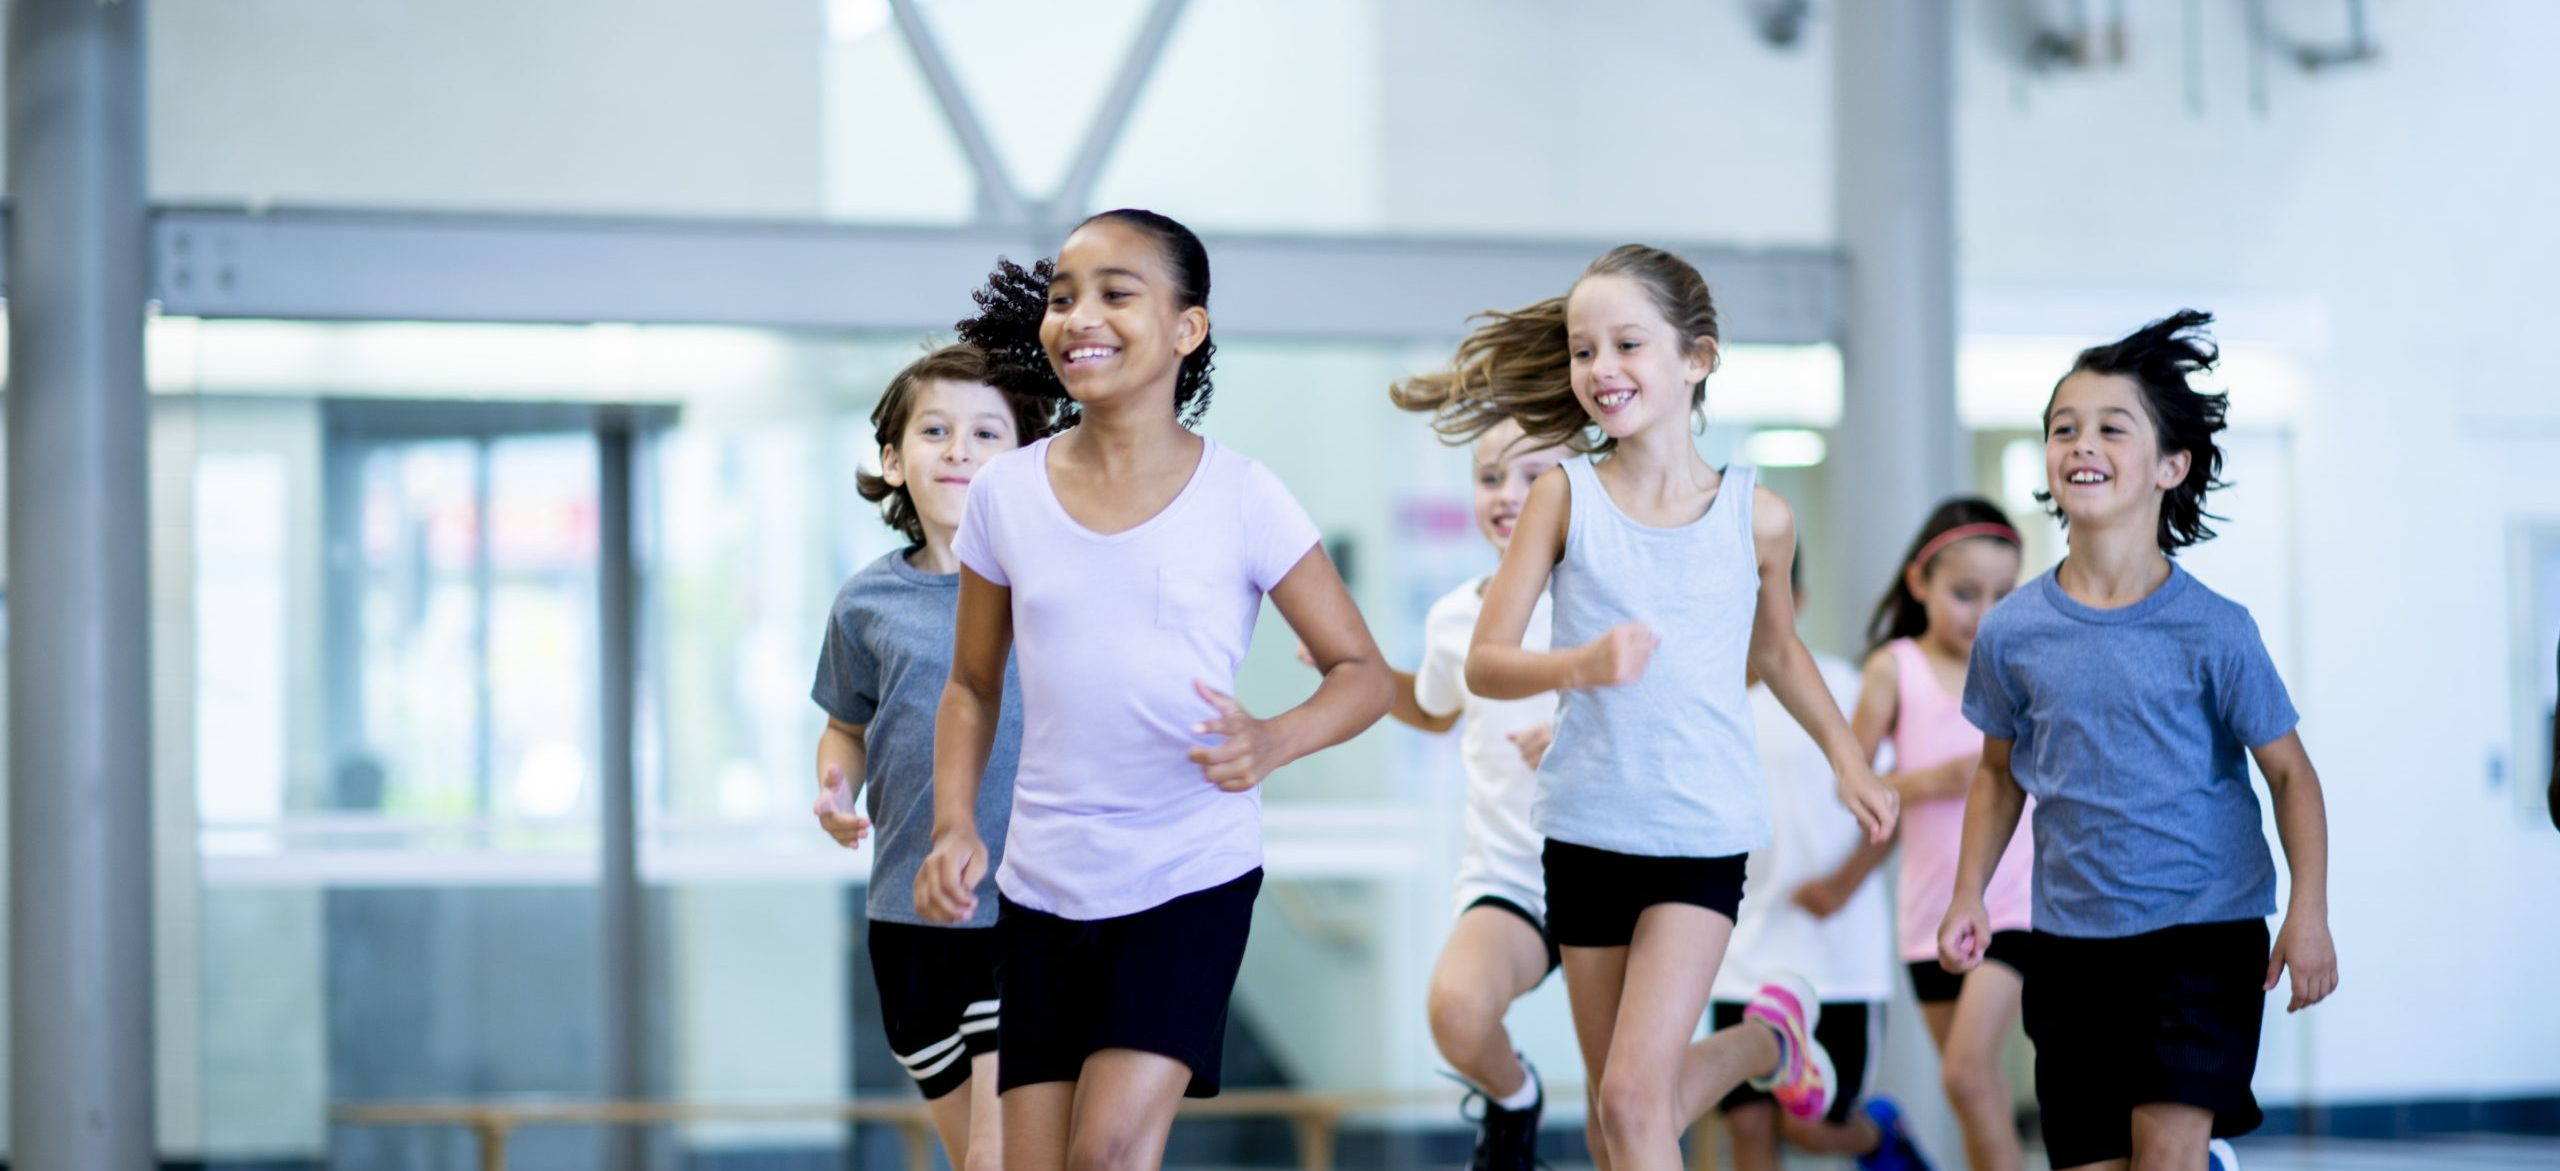 A group of diverse kids run through the gym while laughing.